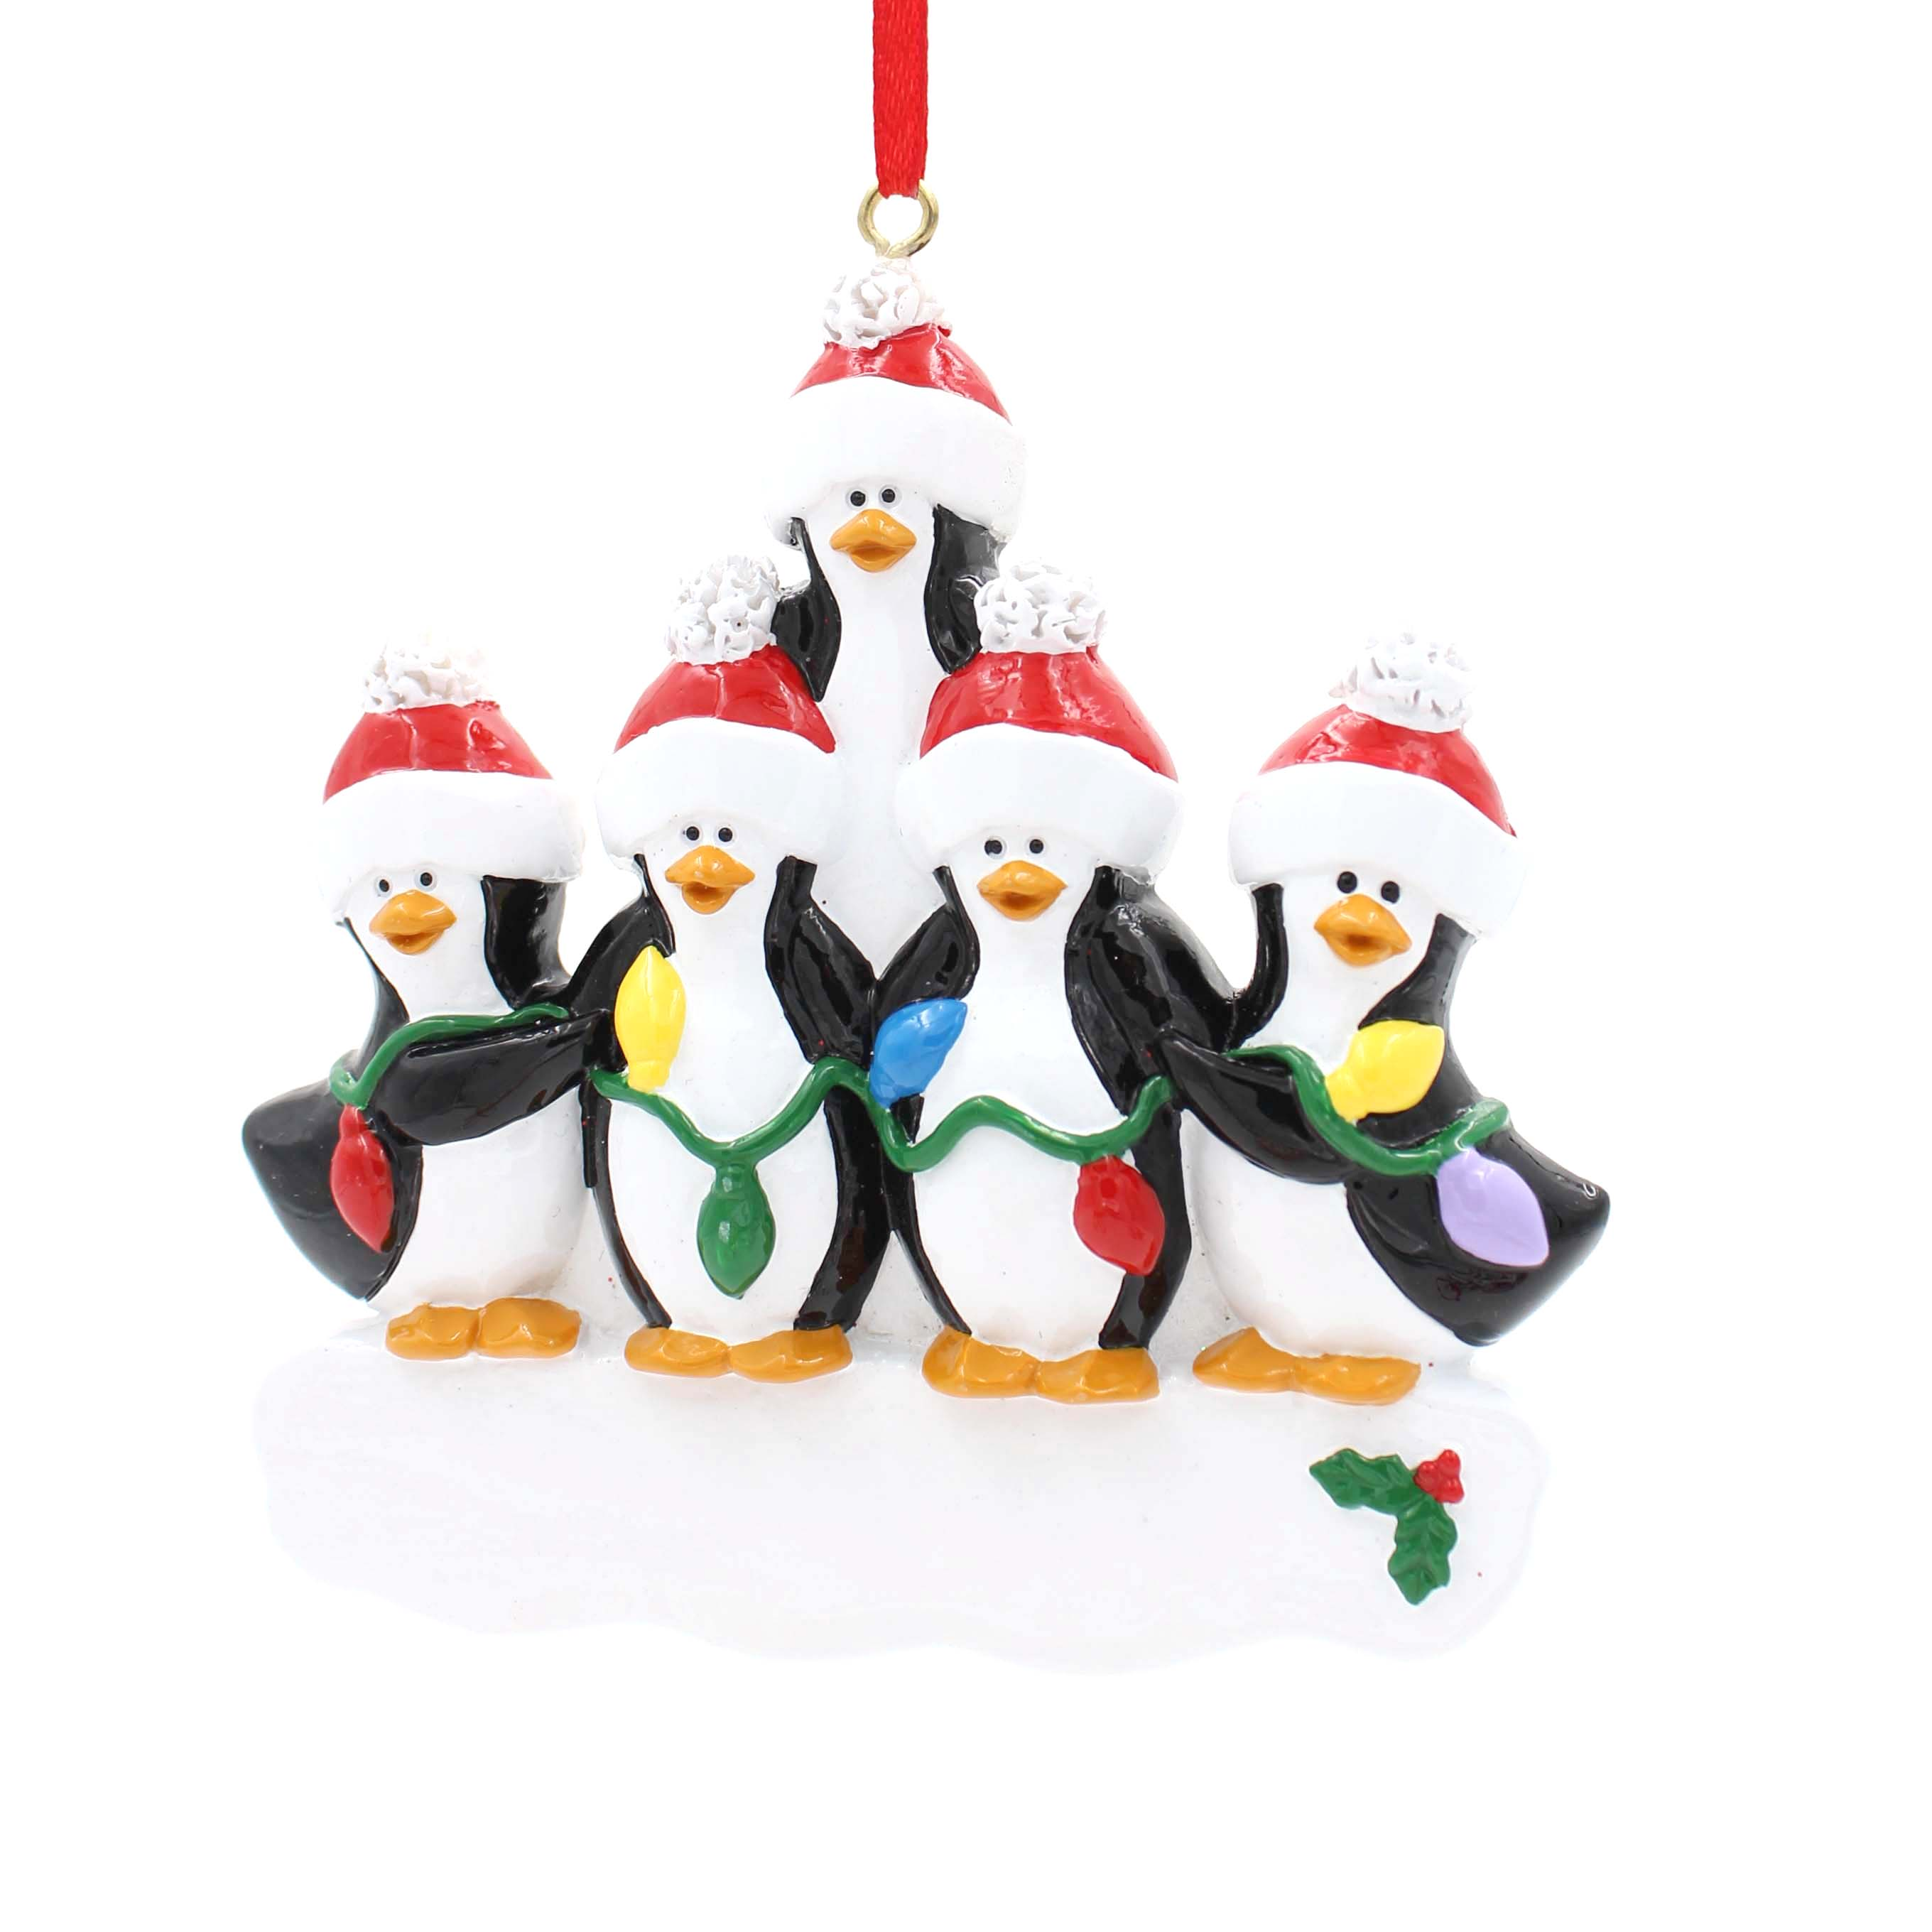 Singing Penguin Family Of 8 Personalized Christmas Tree Ornament